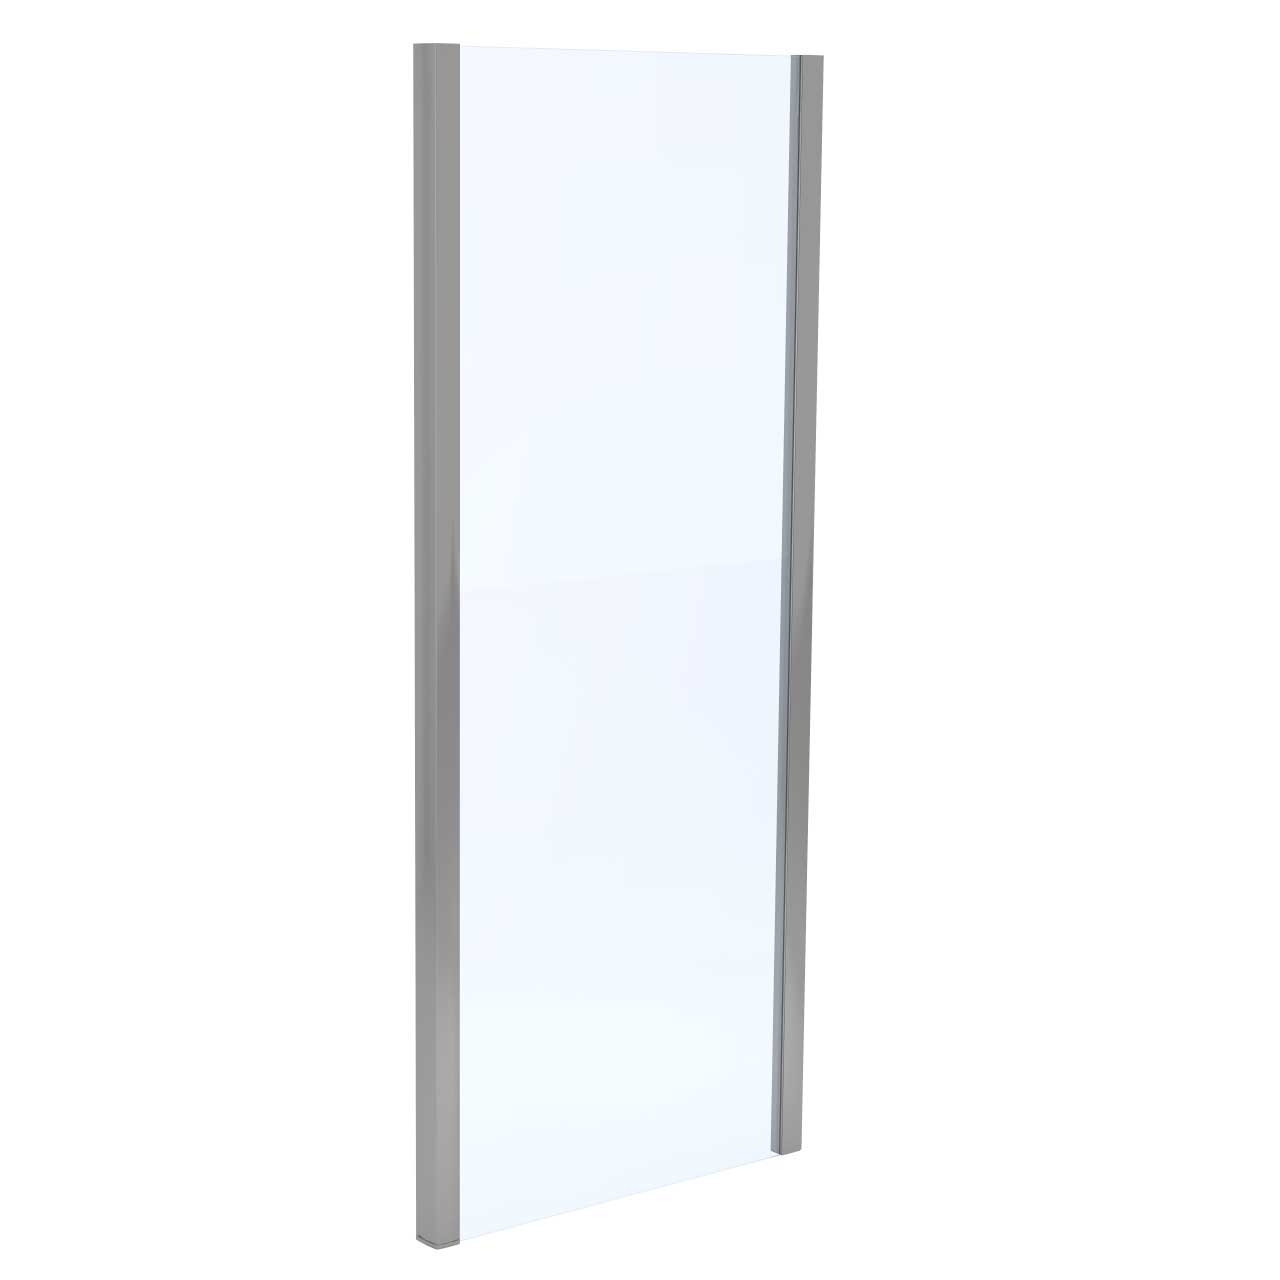 Series 6 1600mm x 760mm Double Sliding Door Shower Enclosure